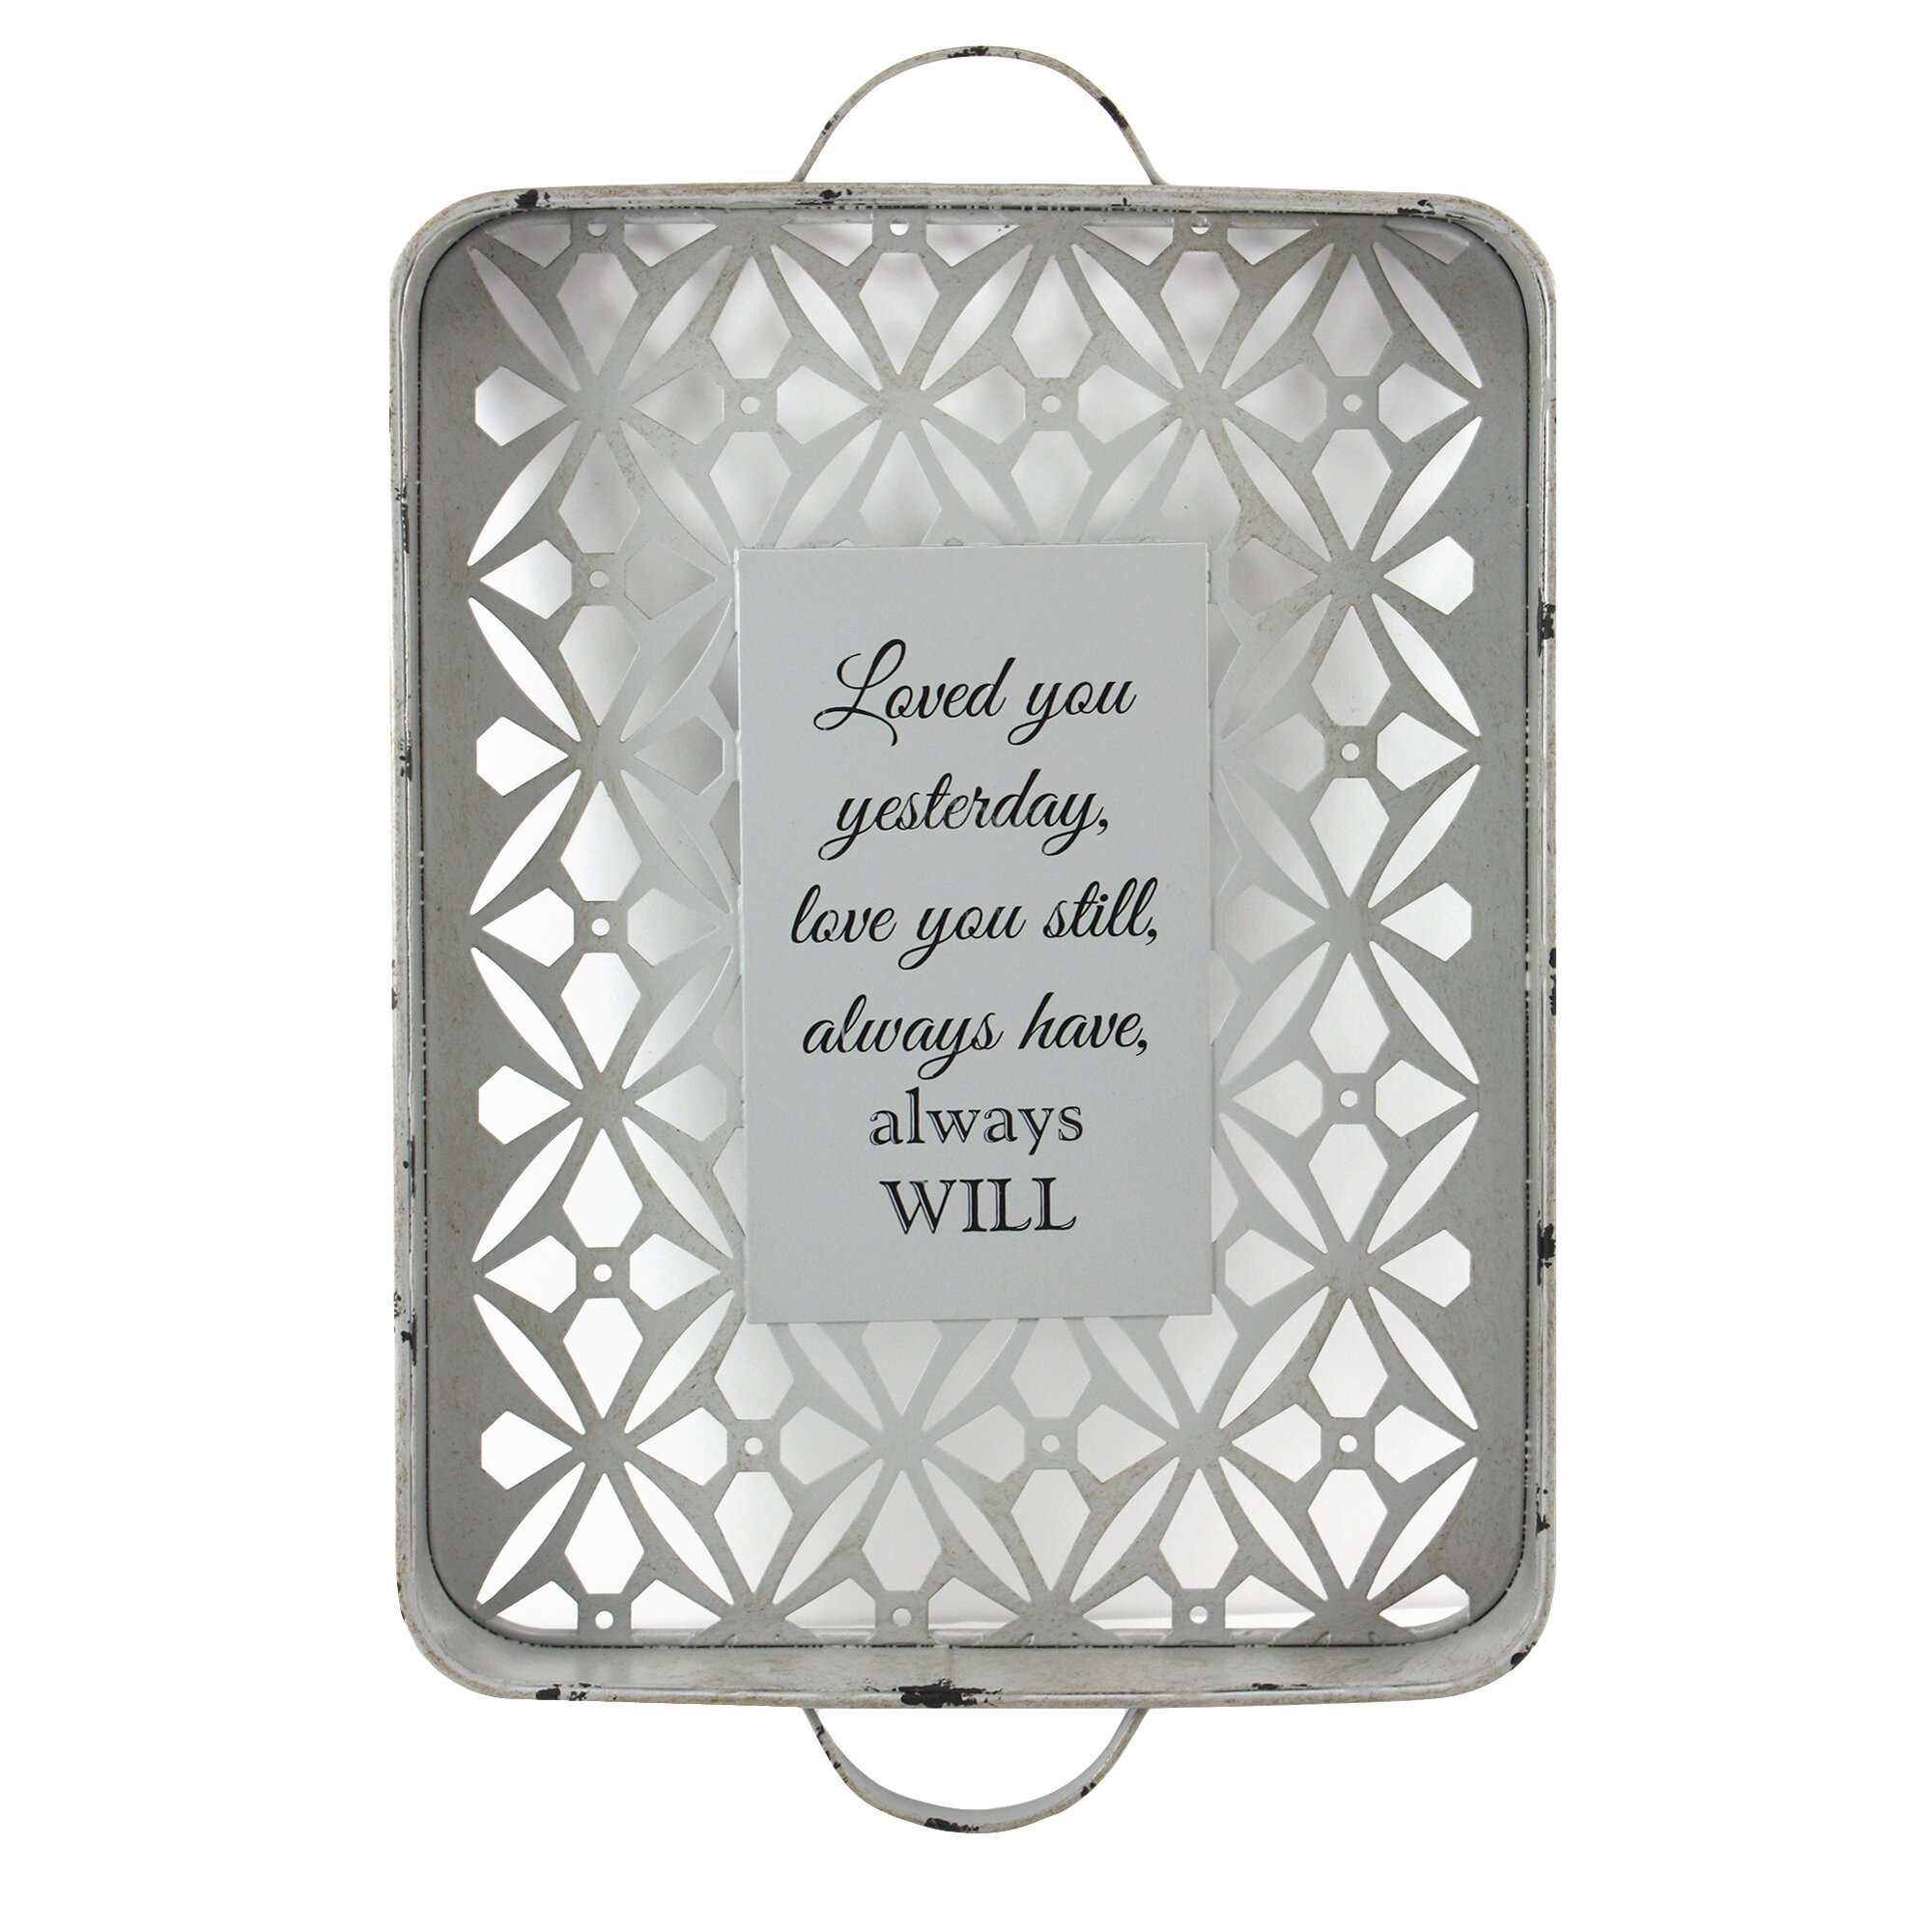 Fetco Home Decor Elzie Love You Still Distressed